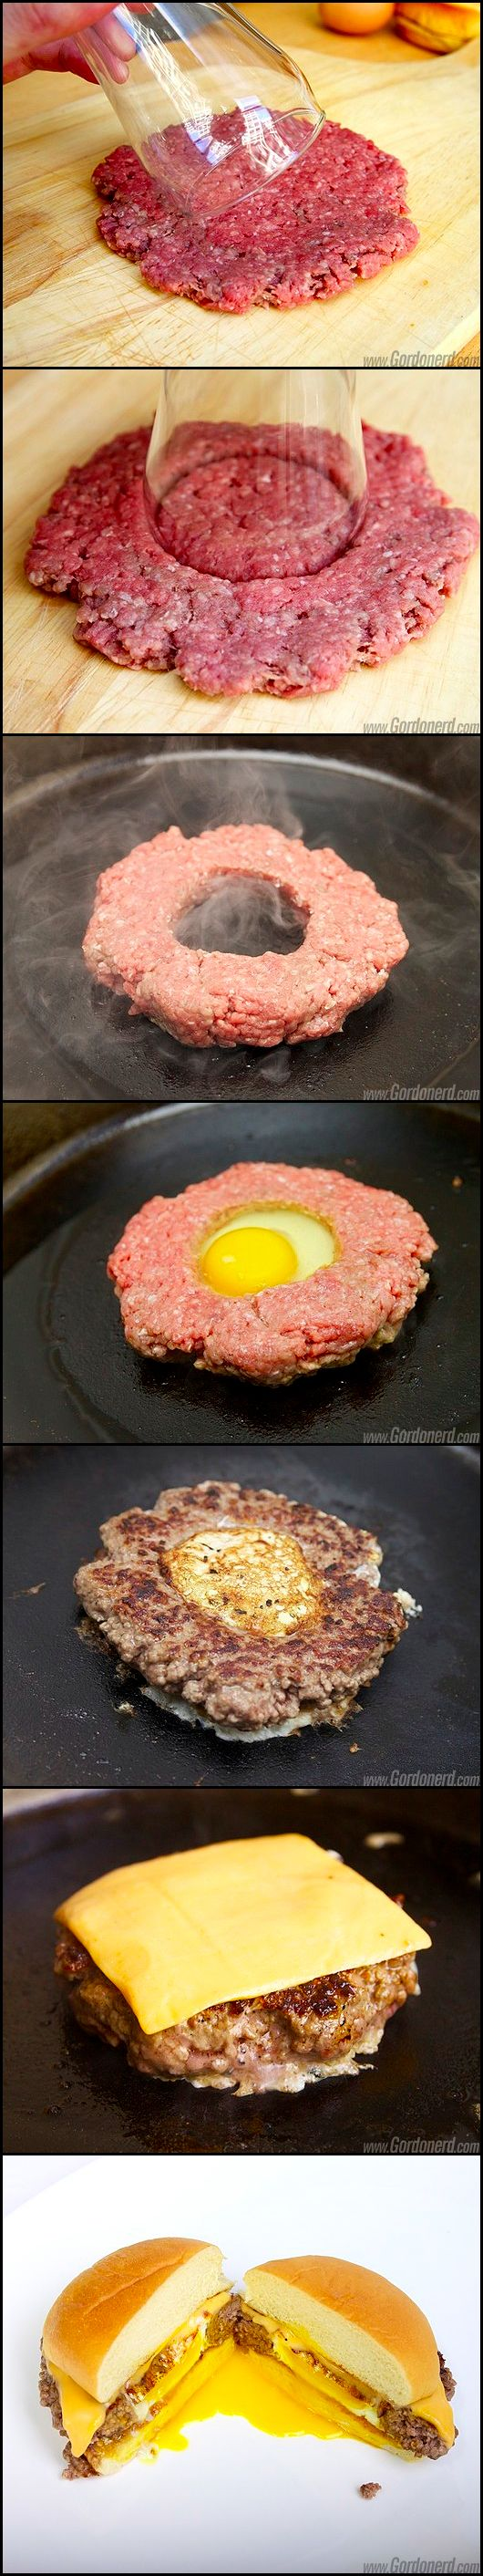 Use sausage and have the perfect breakfast sandwiches